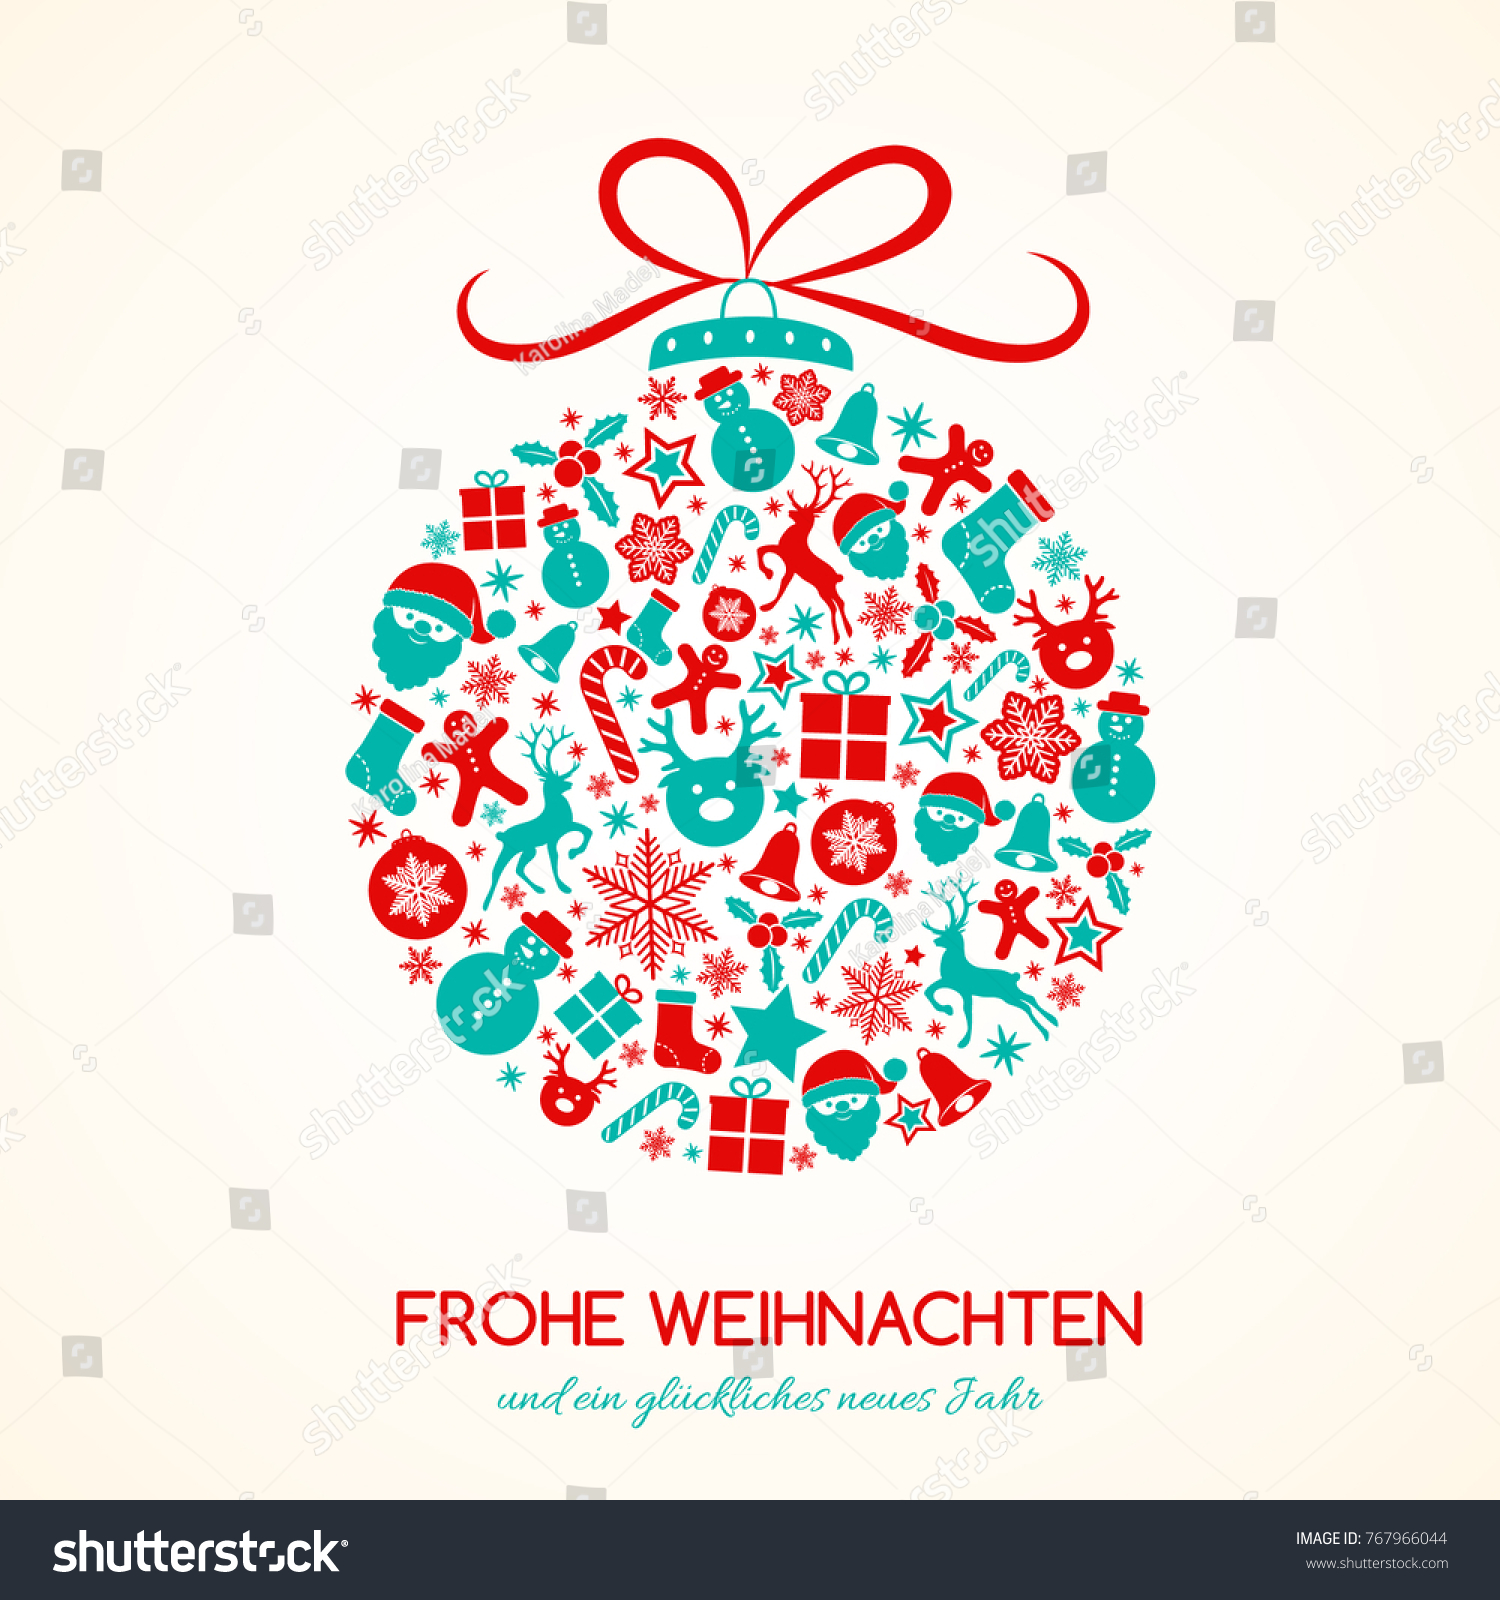 Design Weihnachten Merry Christmas German Frohe Weihnachten Concept Stock Vector